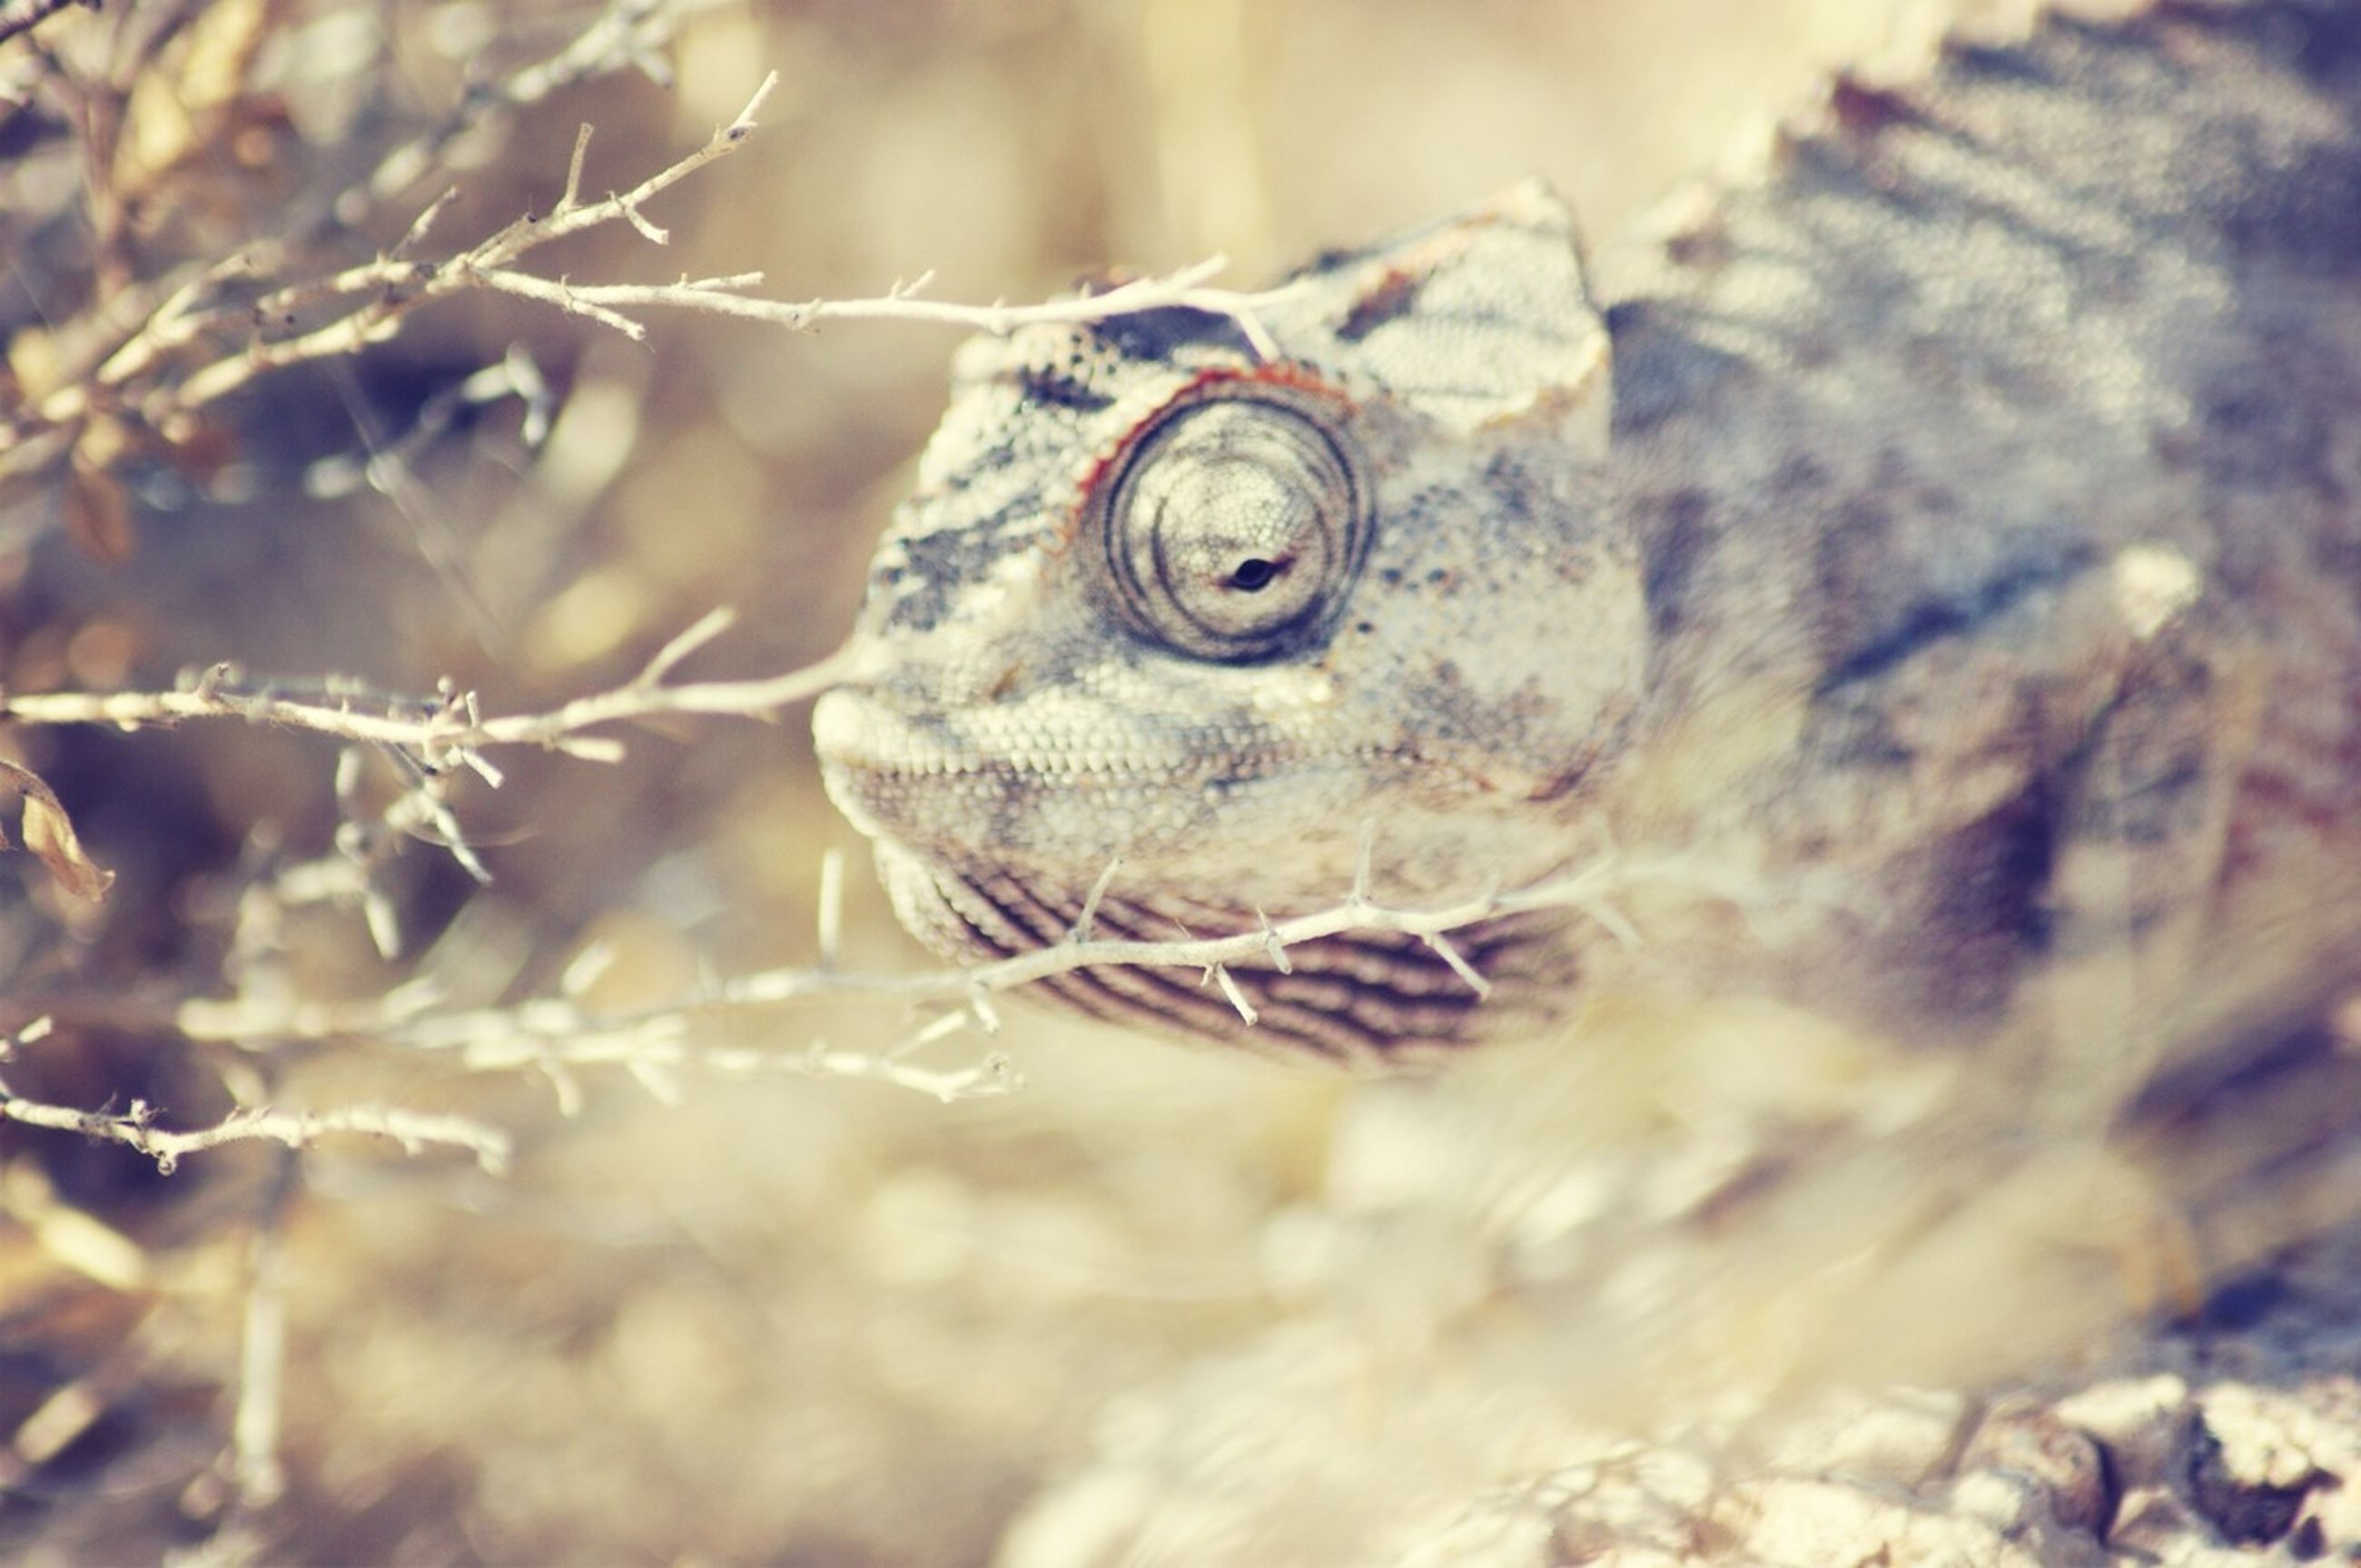 animal themes, one animal, animals in the wild, wildlife, close-up, focus on foreground, animal head, selective focus, portrait, nature, animal eye, looking at camera, outdoors, reptile, animal body part, day, no people, zoology, mammal